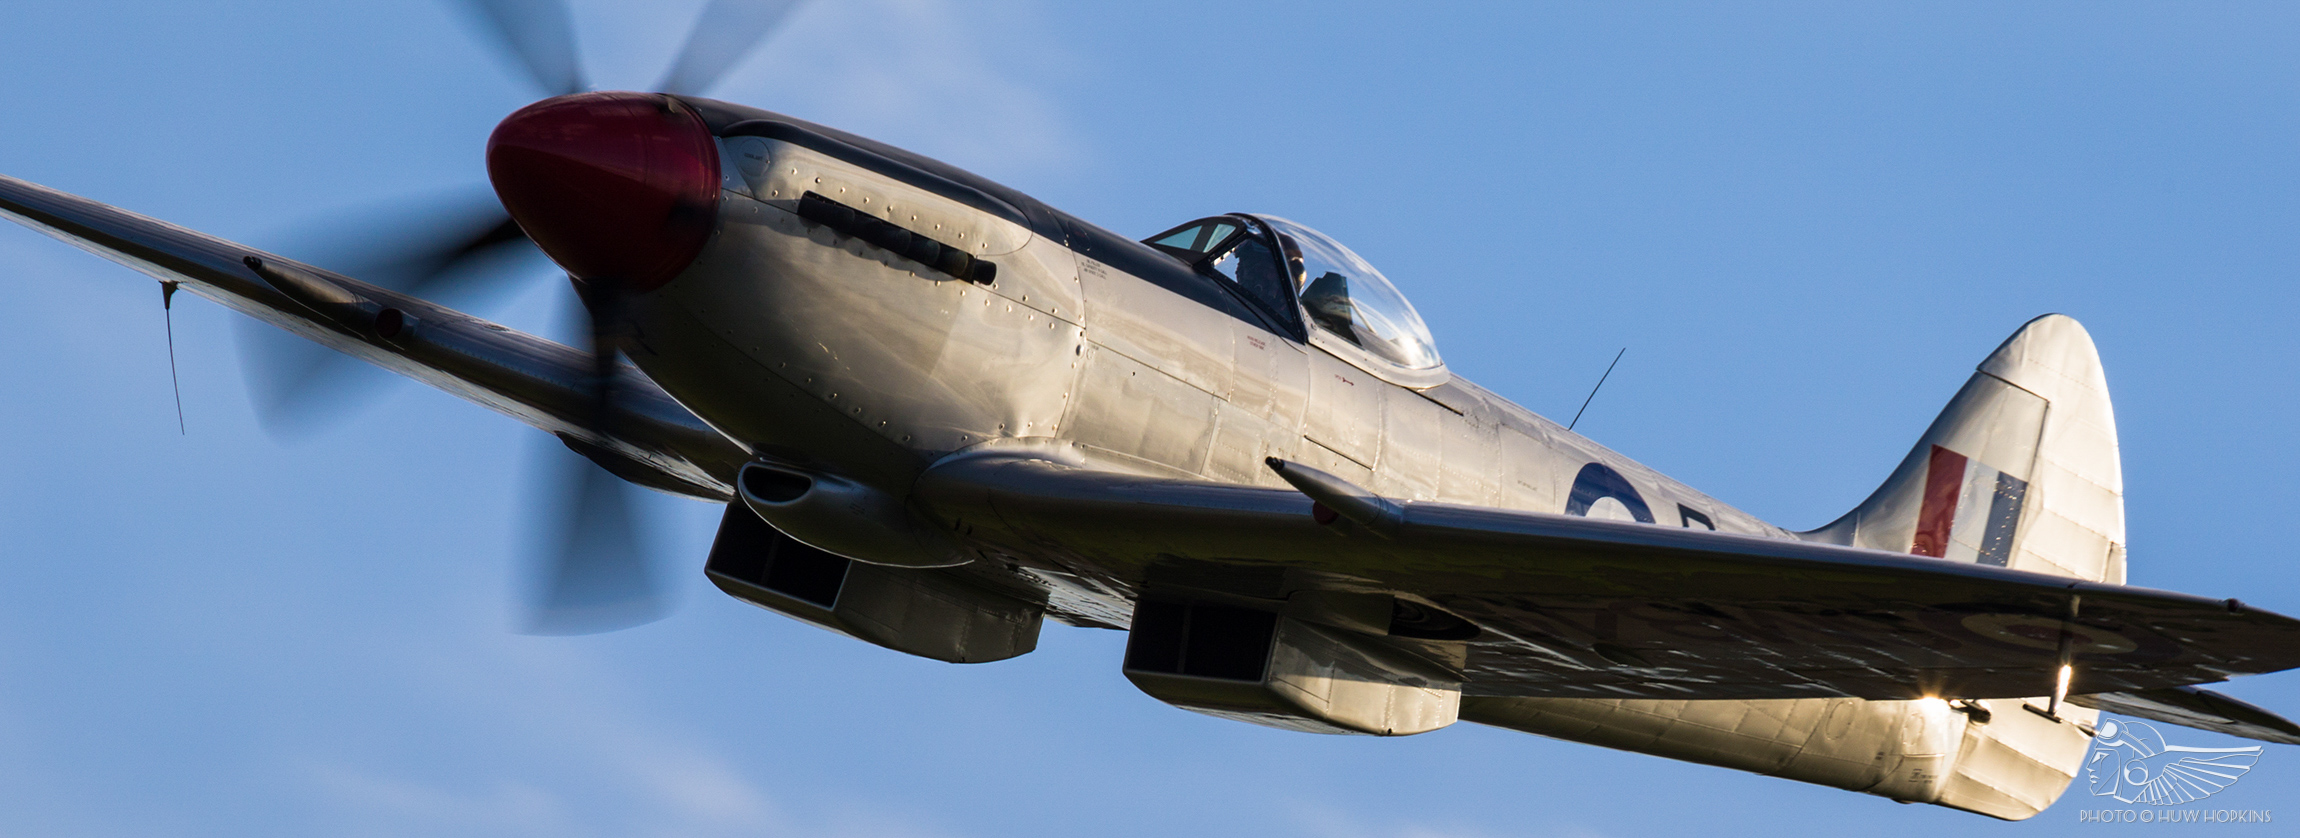 Protecting Britain's aviation heritage